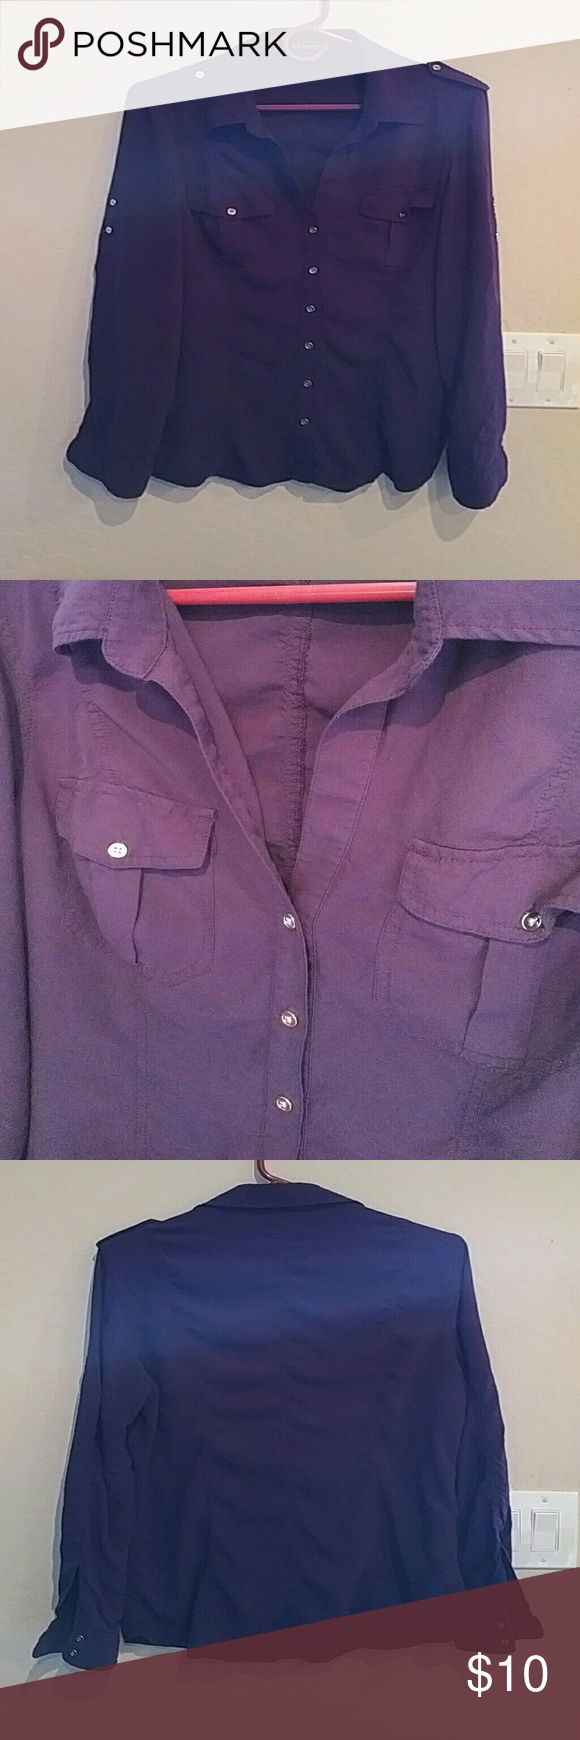 Express purple button up blouse Button up blouse with roll up sleeves and 2 front pockets. Express Tops Button Down Shirts